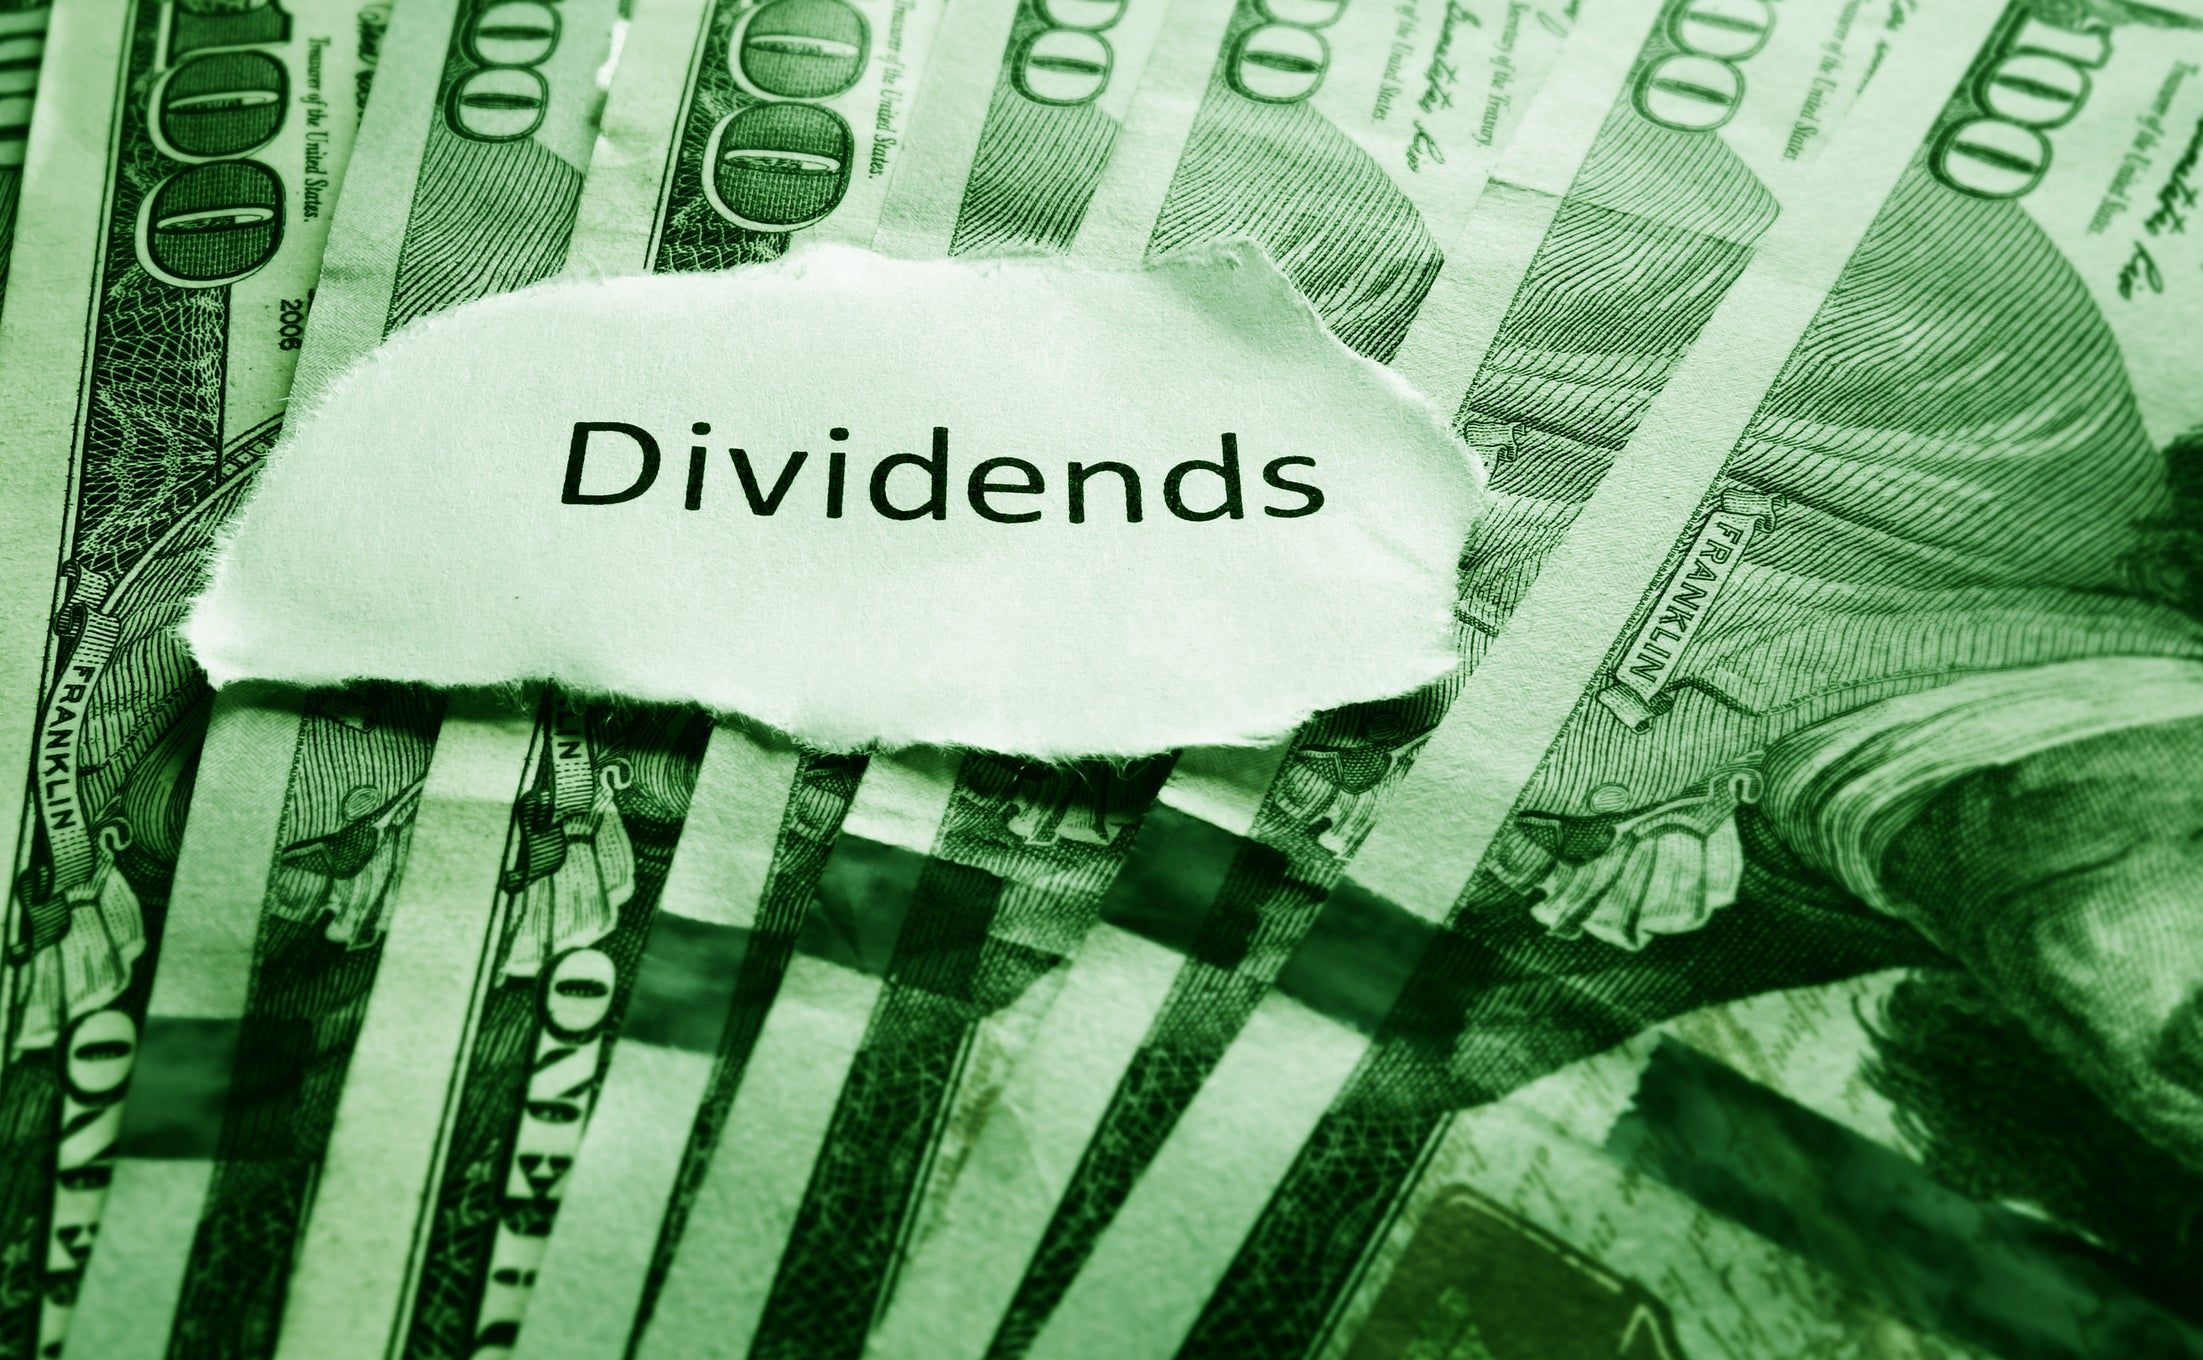 AT&T Here Are 3 Better Dividend Stocks (With